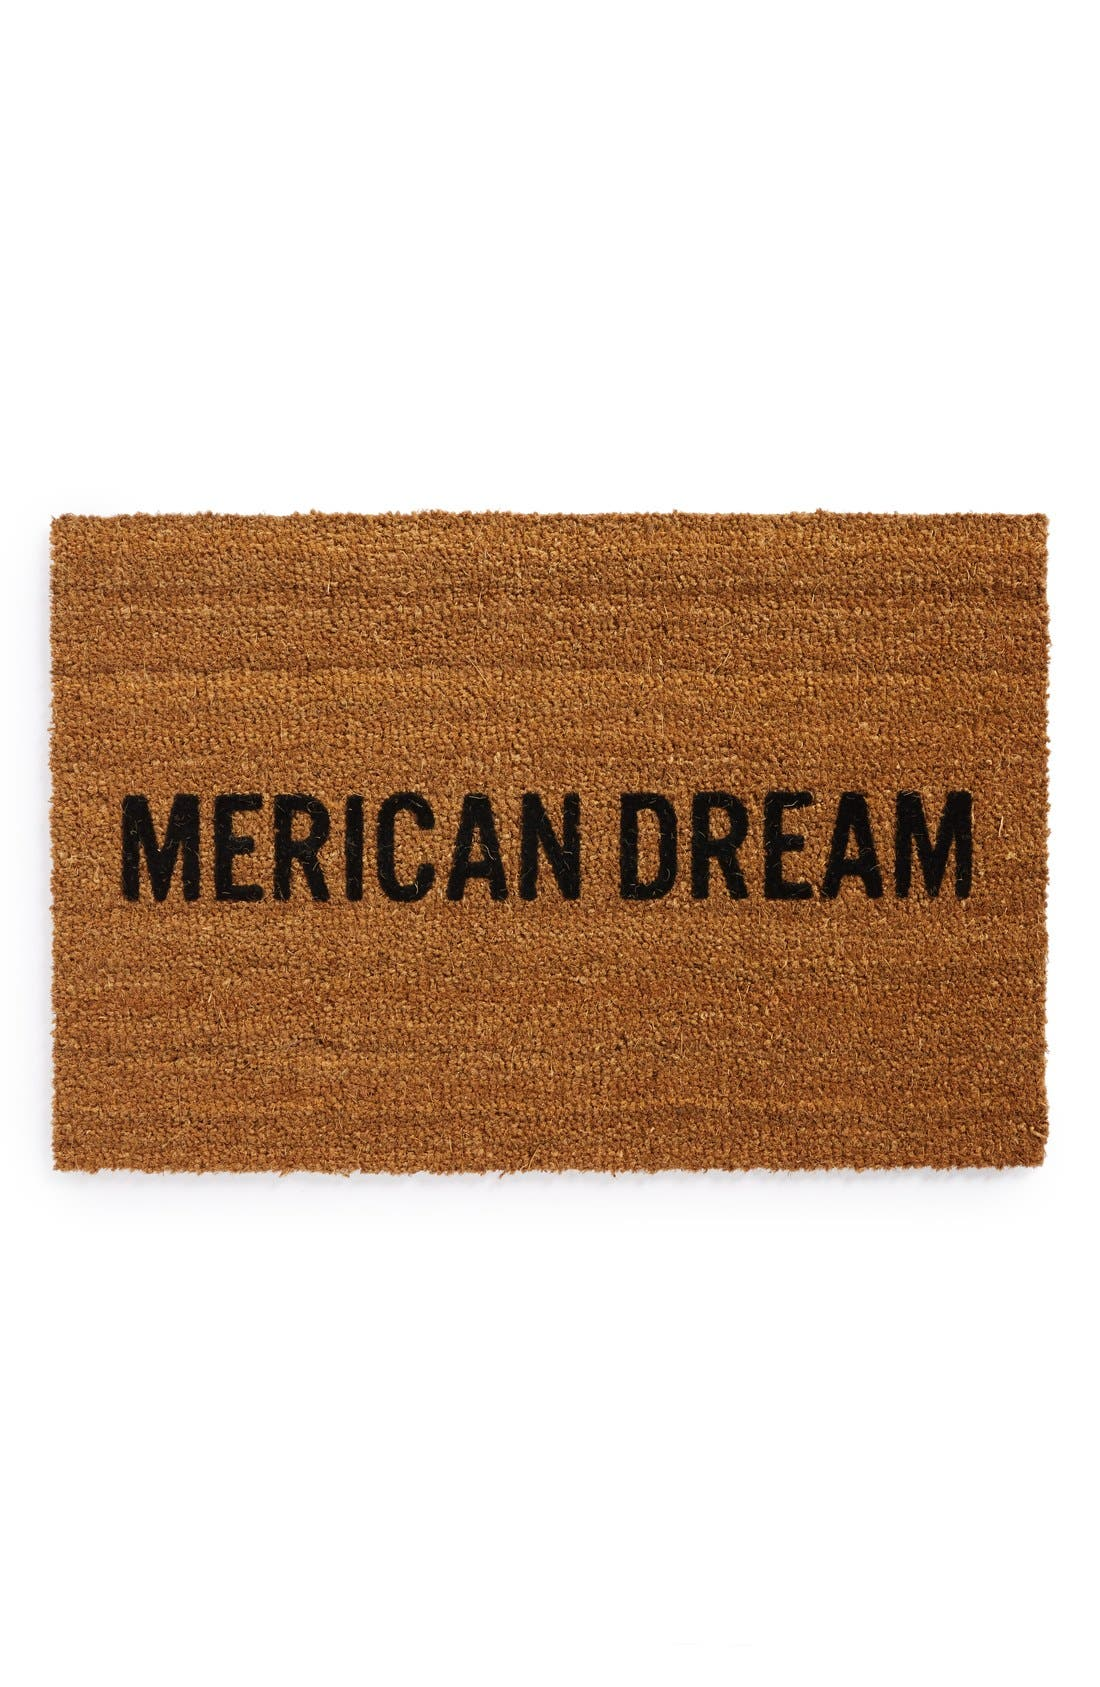 'Merican Dream' Doormat,                             Main thumbnail 1, color,                             BROWN